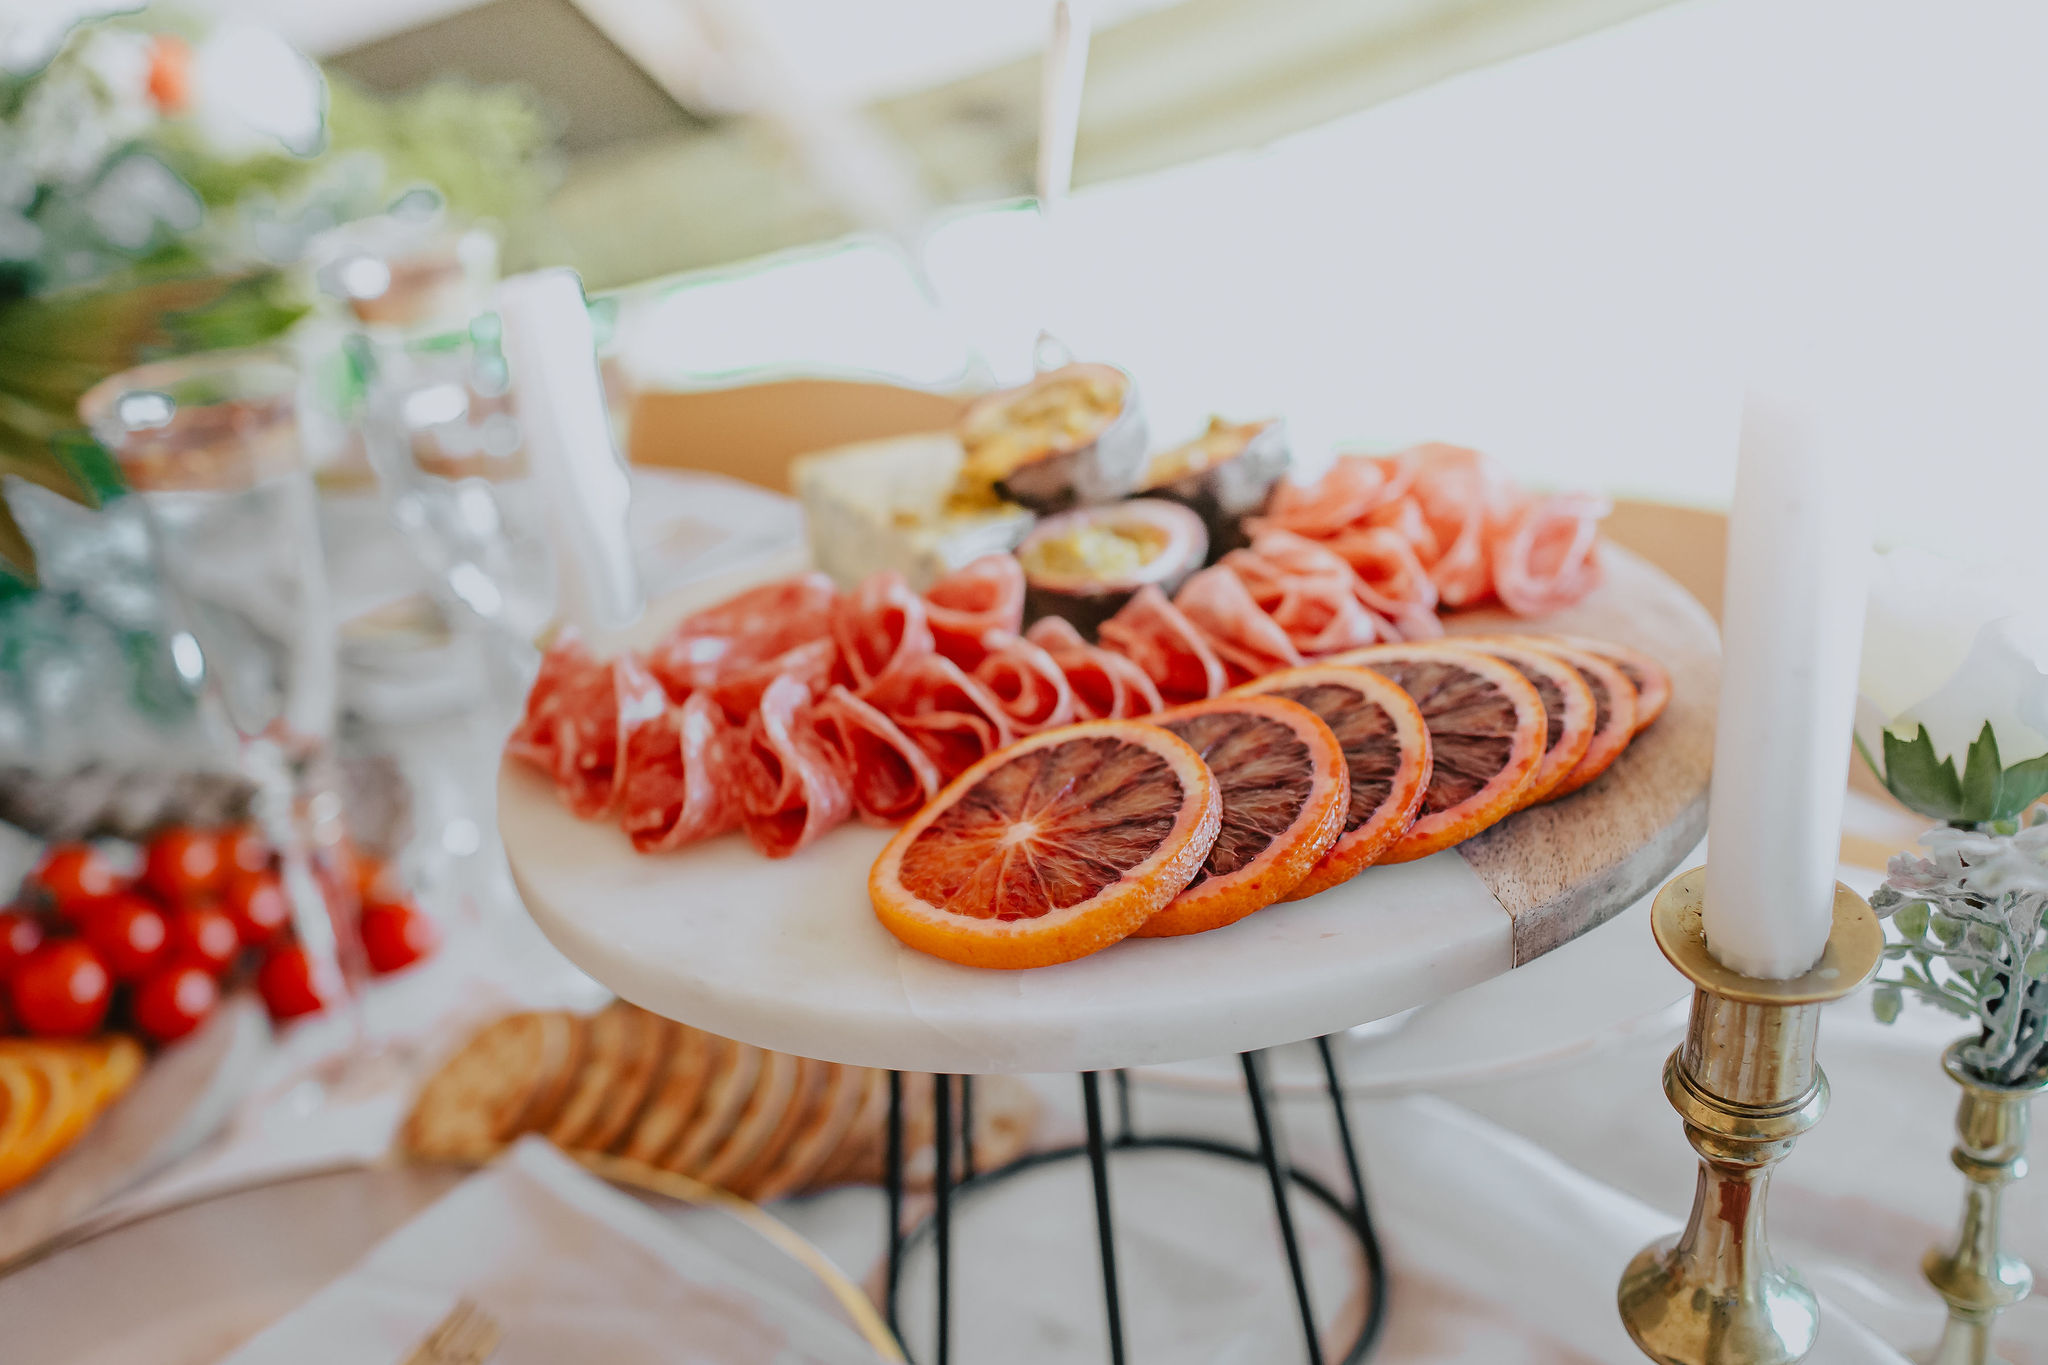 Grazing platter laid out on a table